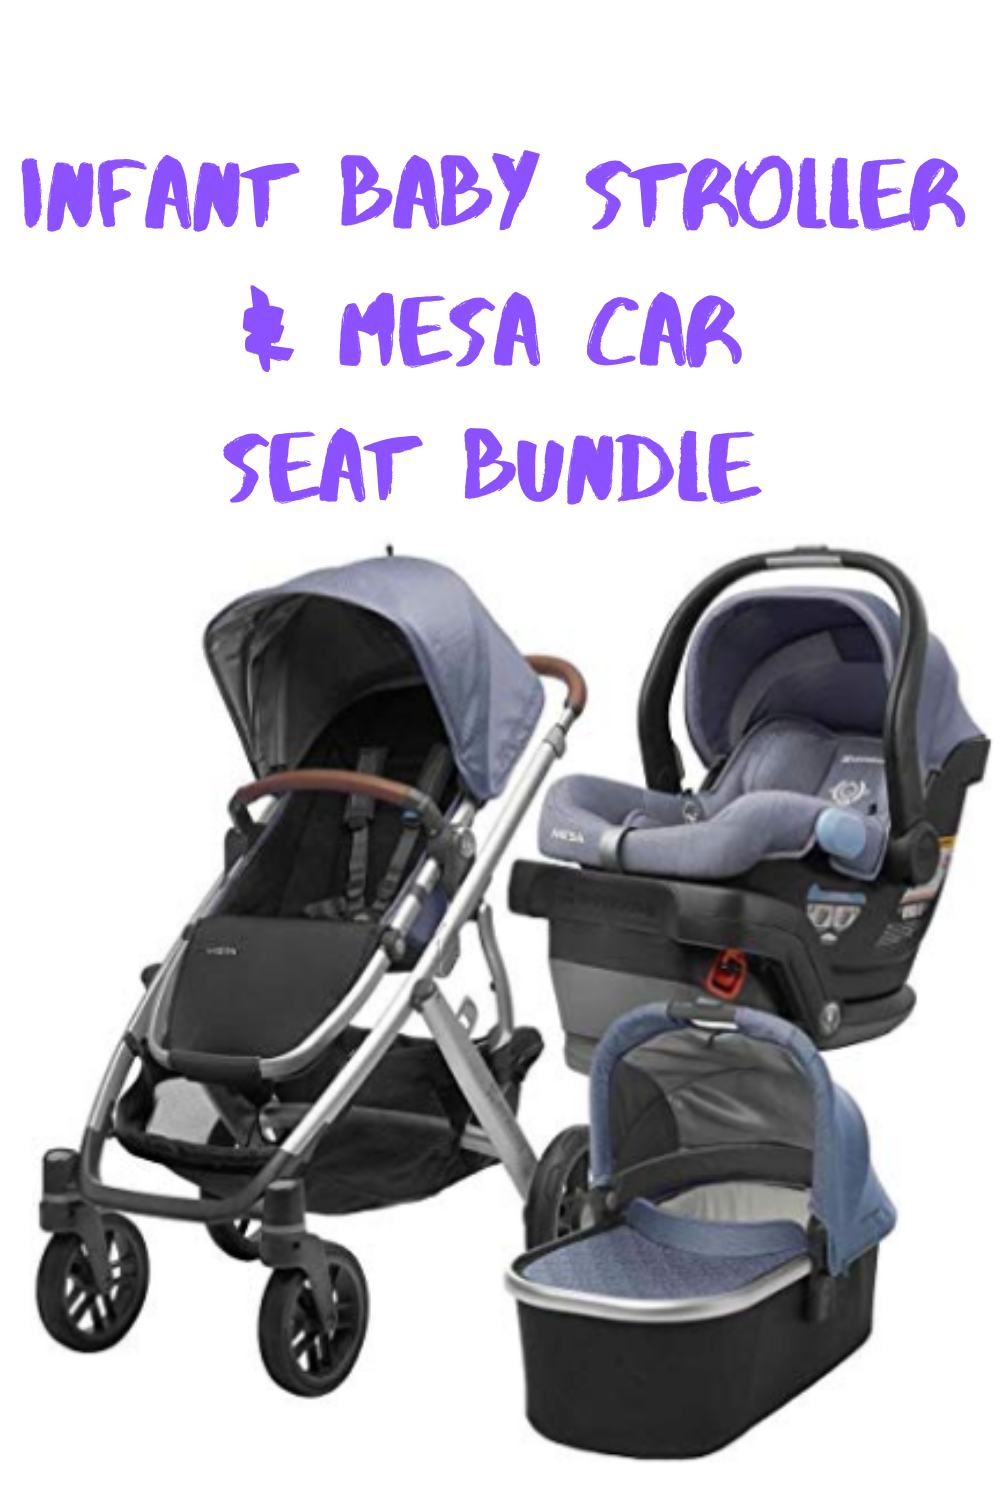 The Ultimate travel system bundle. Includes Vista Stroller